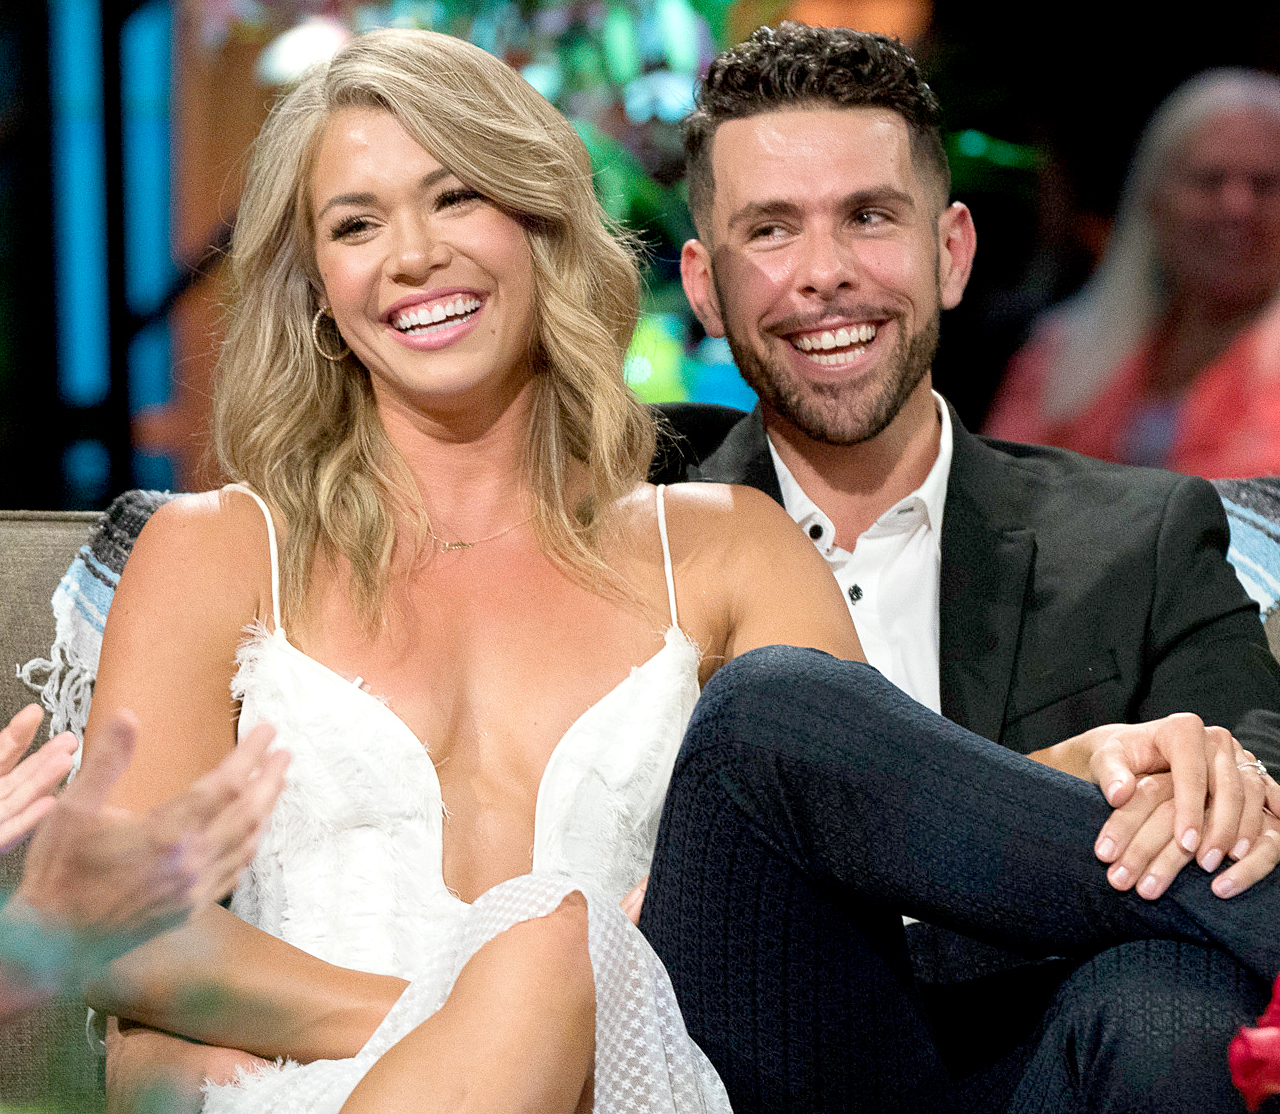 who is still dating from bachelor pad 3